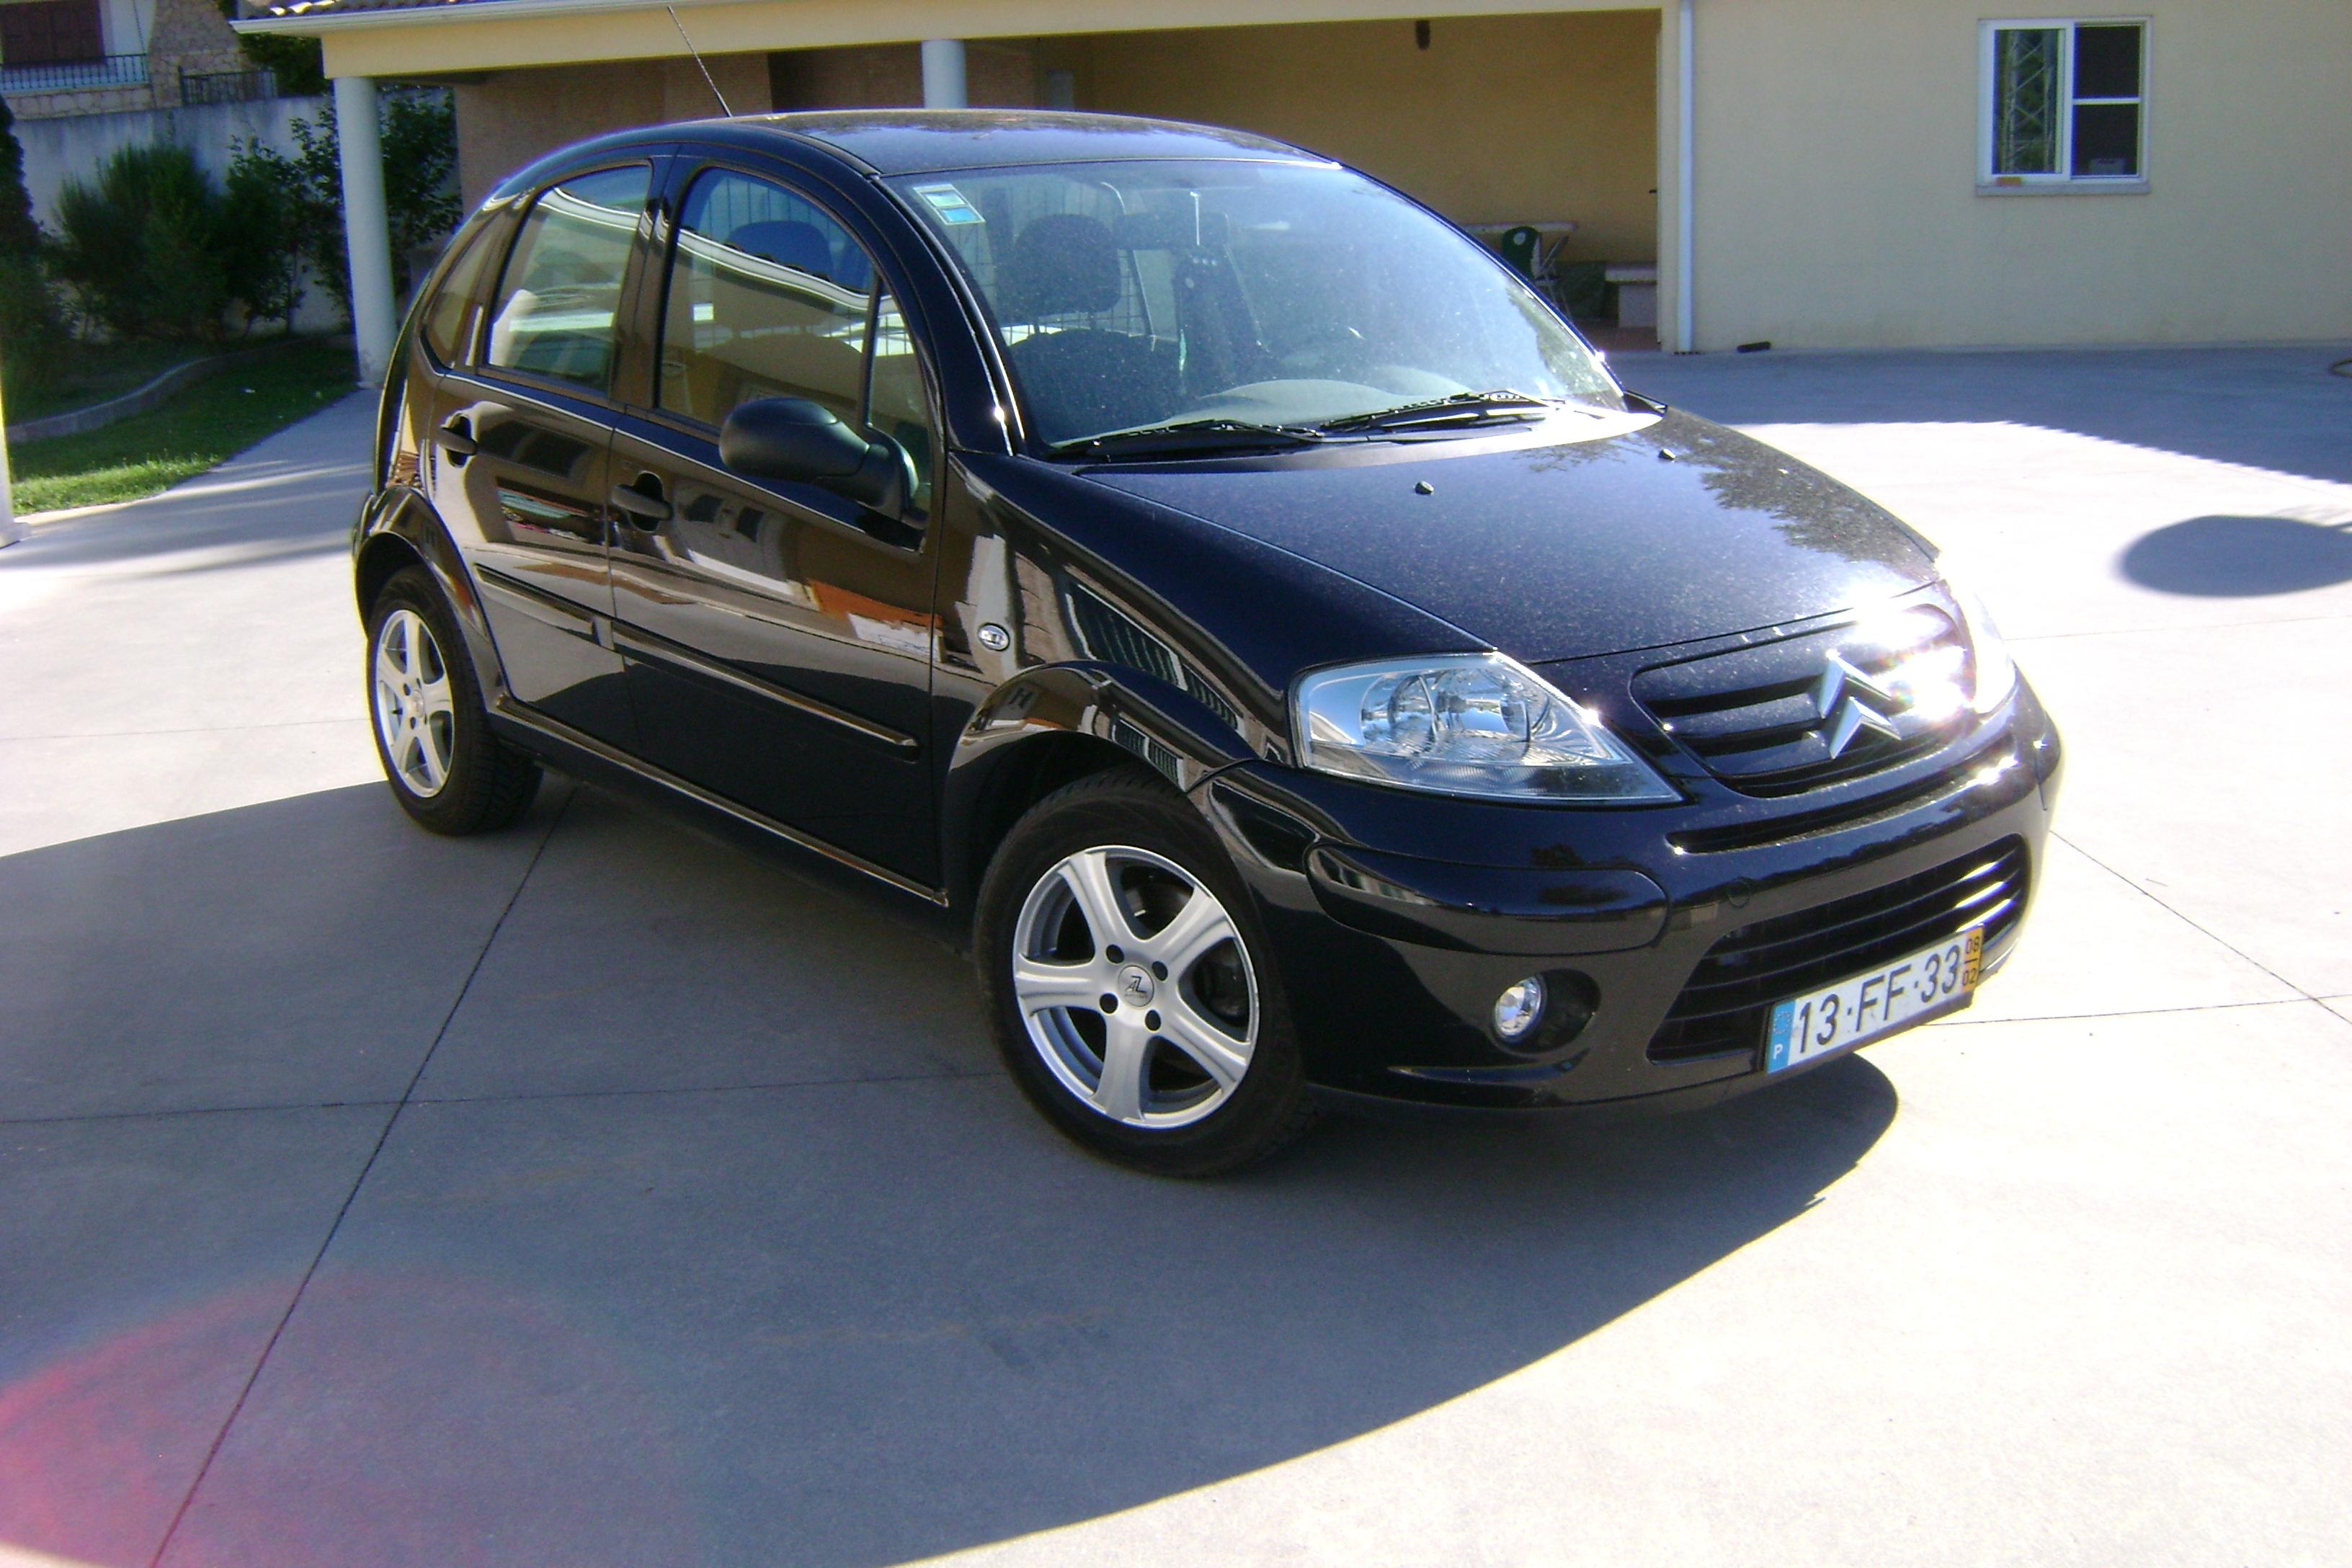 dsmario 2008 citroen c3 specs photos modification info at cardomain. Black Bedroom Furniture Sets. Home Design Ideas